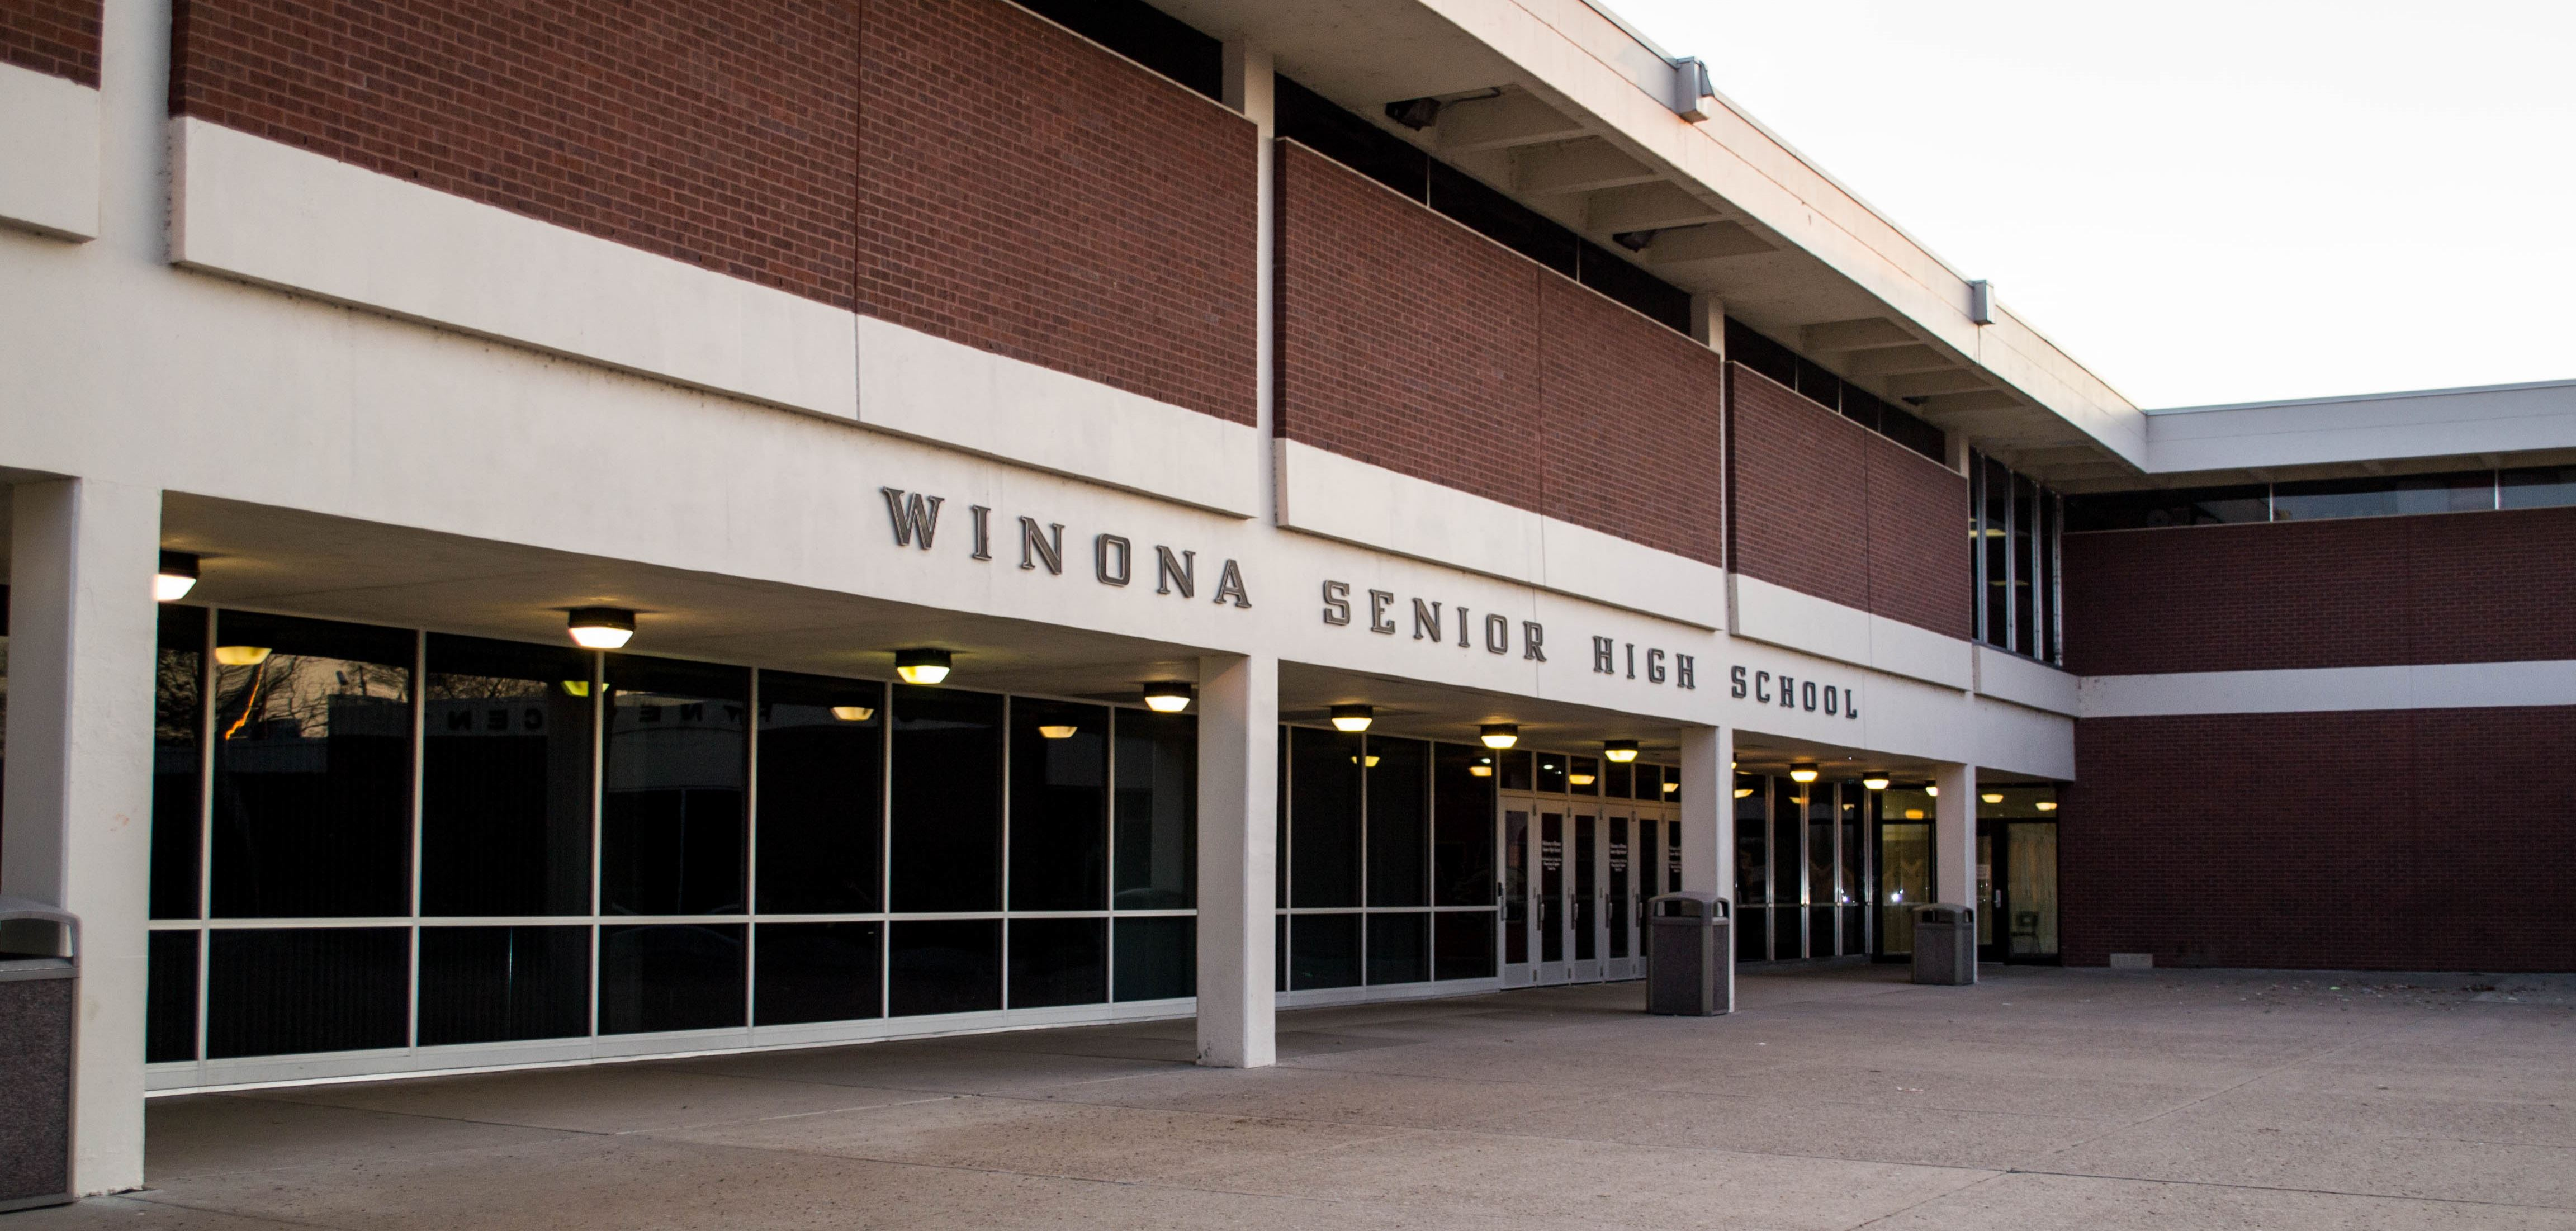 Winona Senior High School building front.